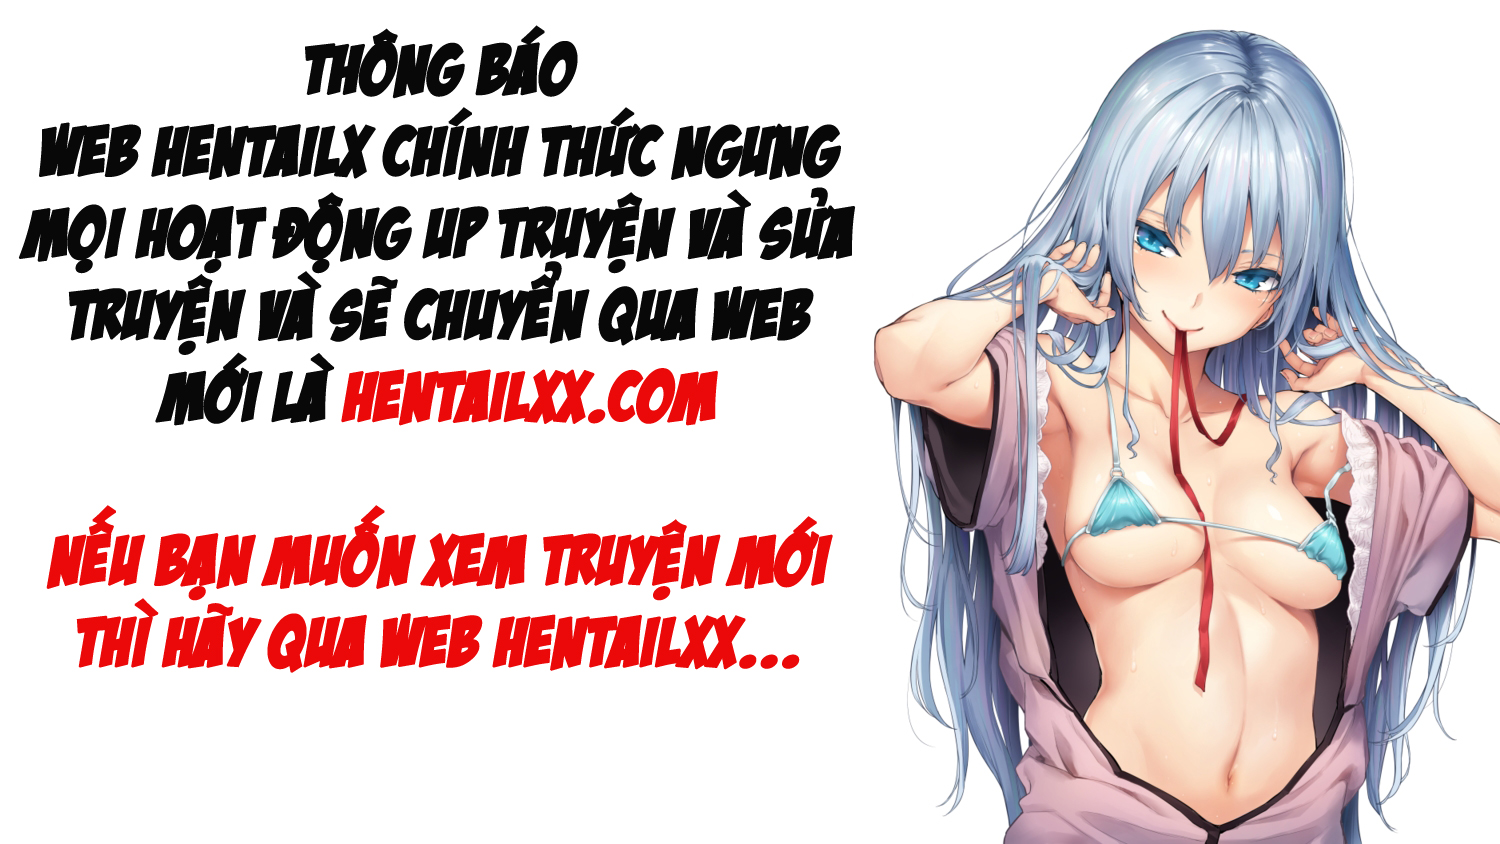 %252800B We're All Horny  - hentaicube.net - Truyện tranh hentai online